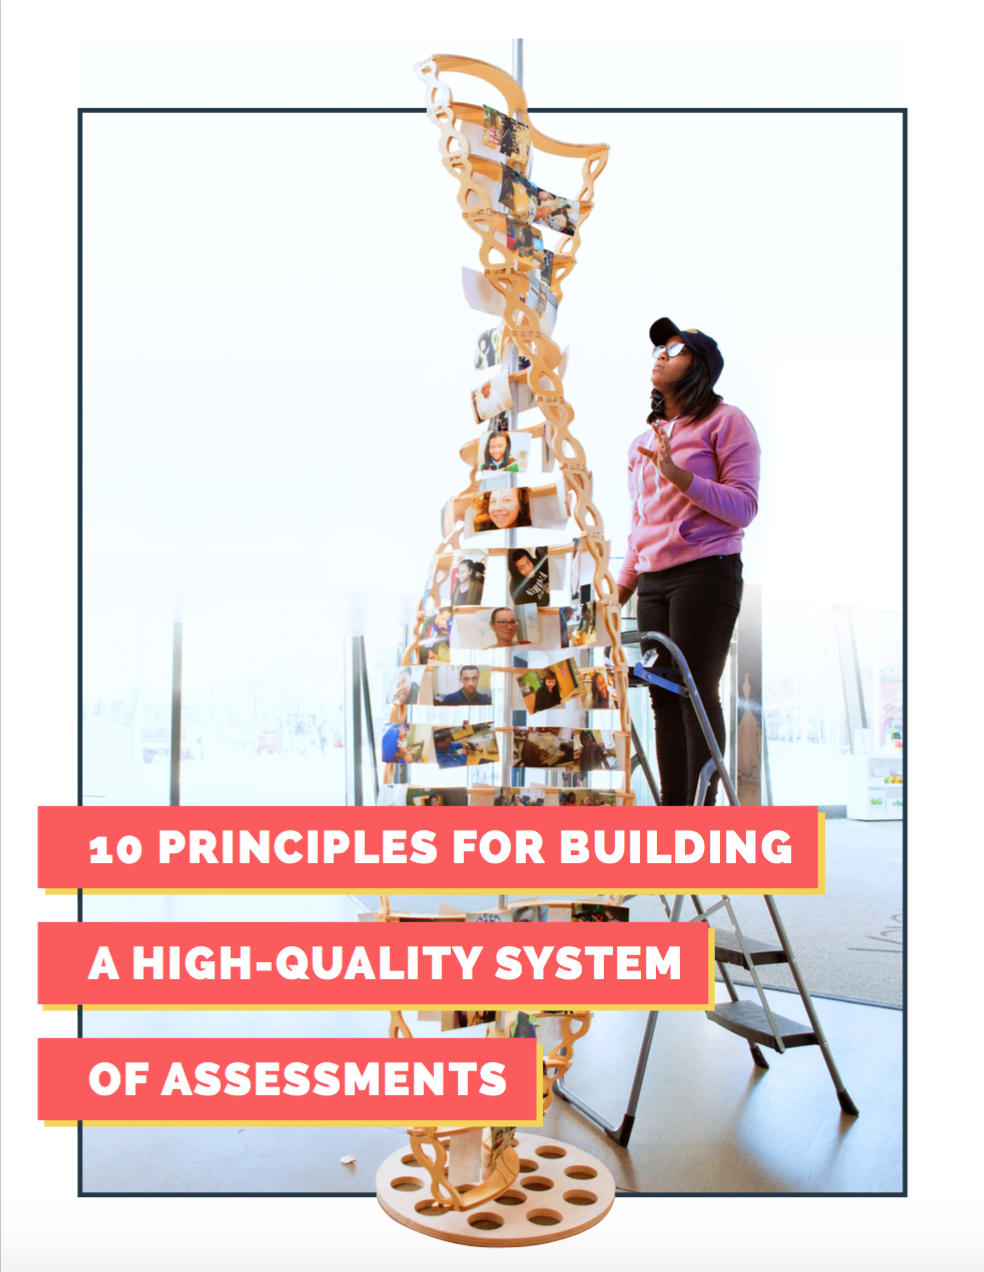 10 Principles for High Quality Assessments